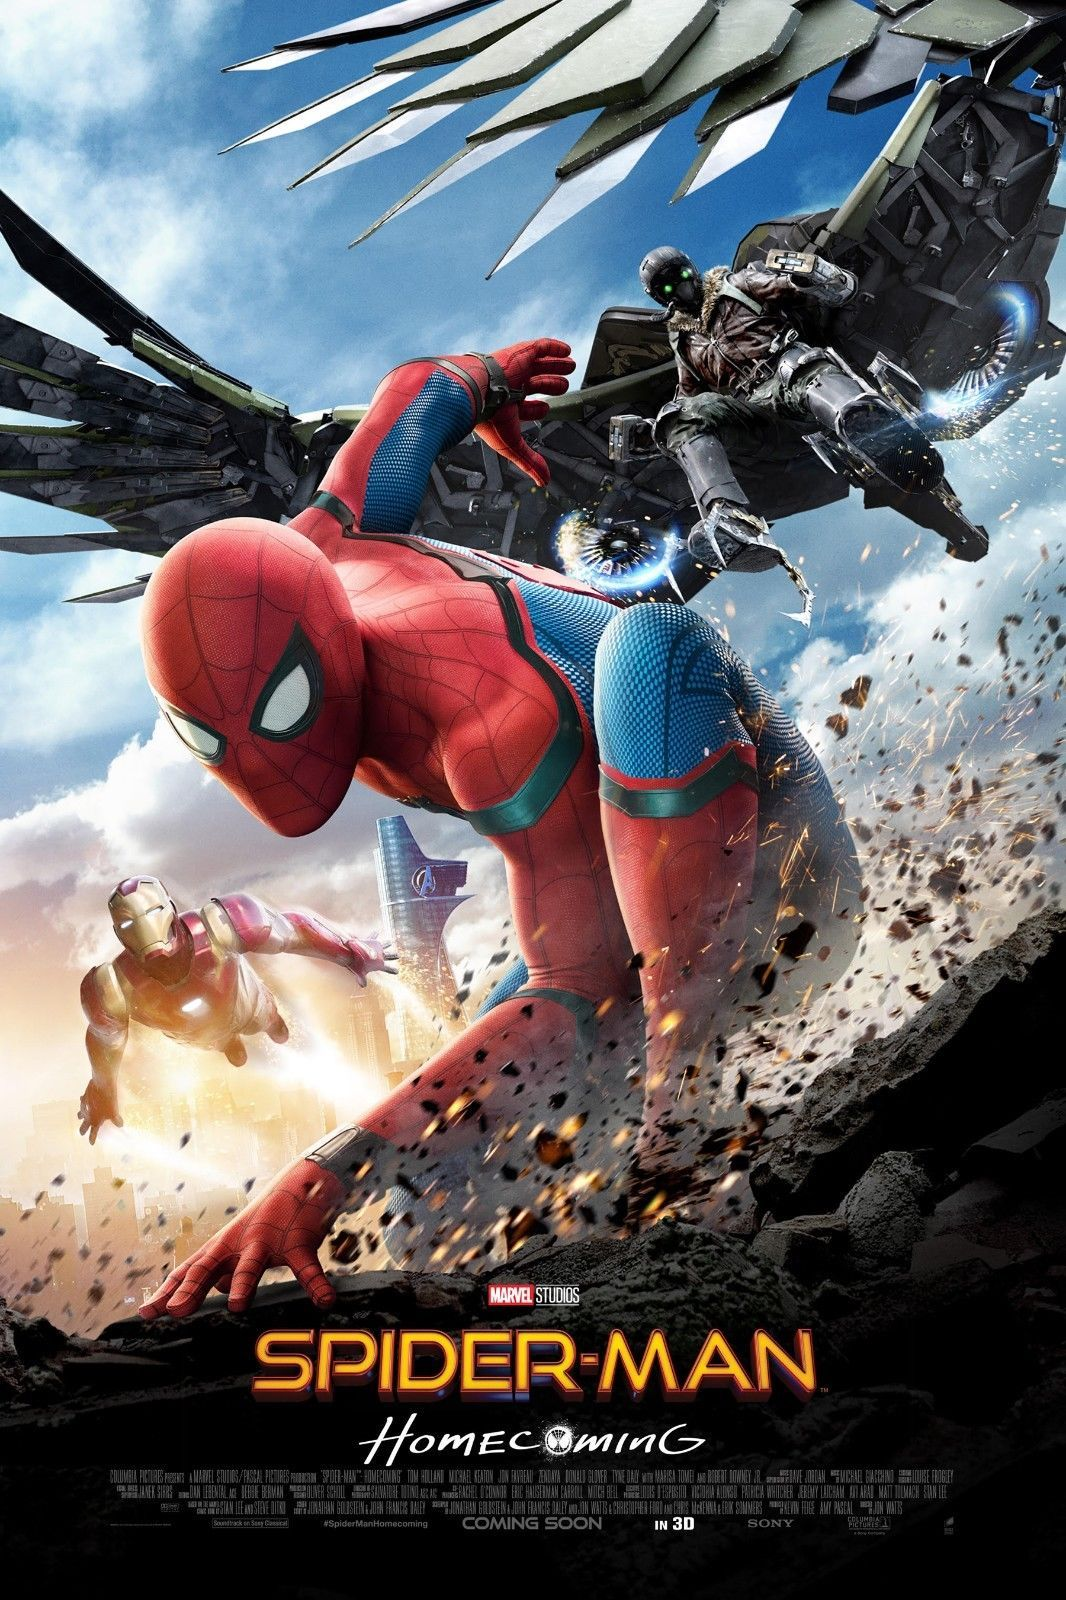 Spiderman Homecoming Movie Poster Brand New Sealed 24x36 Premium Paper Spiderman Homecoming Movie Spiderman Homecoming Movie Poster Spiderman